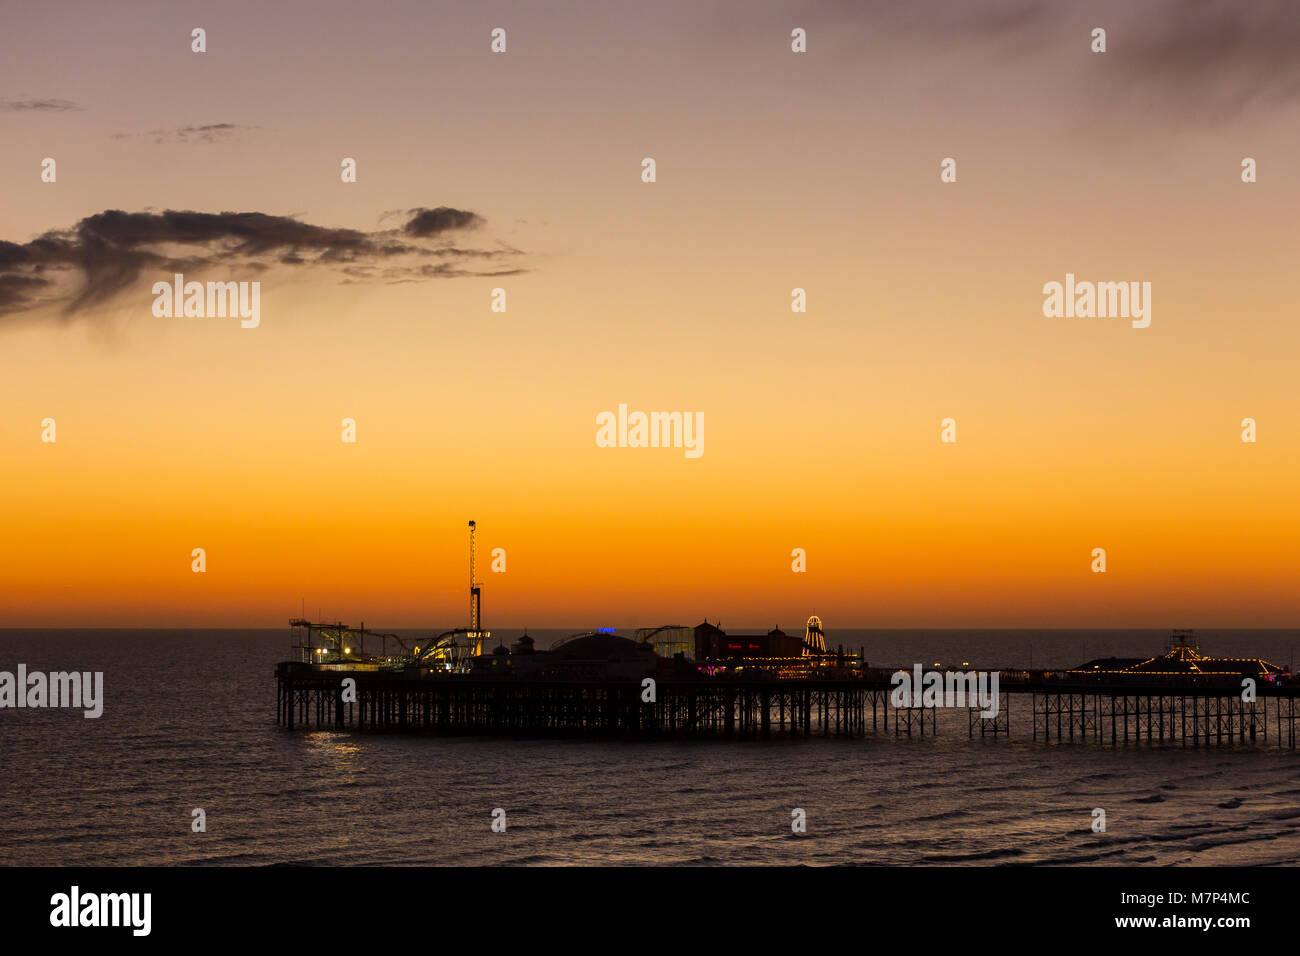 The Brighton Palace Pier, commonly known as Brighton Pier or the Palace Pier is a Grade II listed pleasure pier - Stock Image